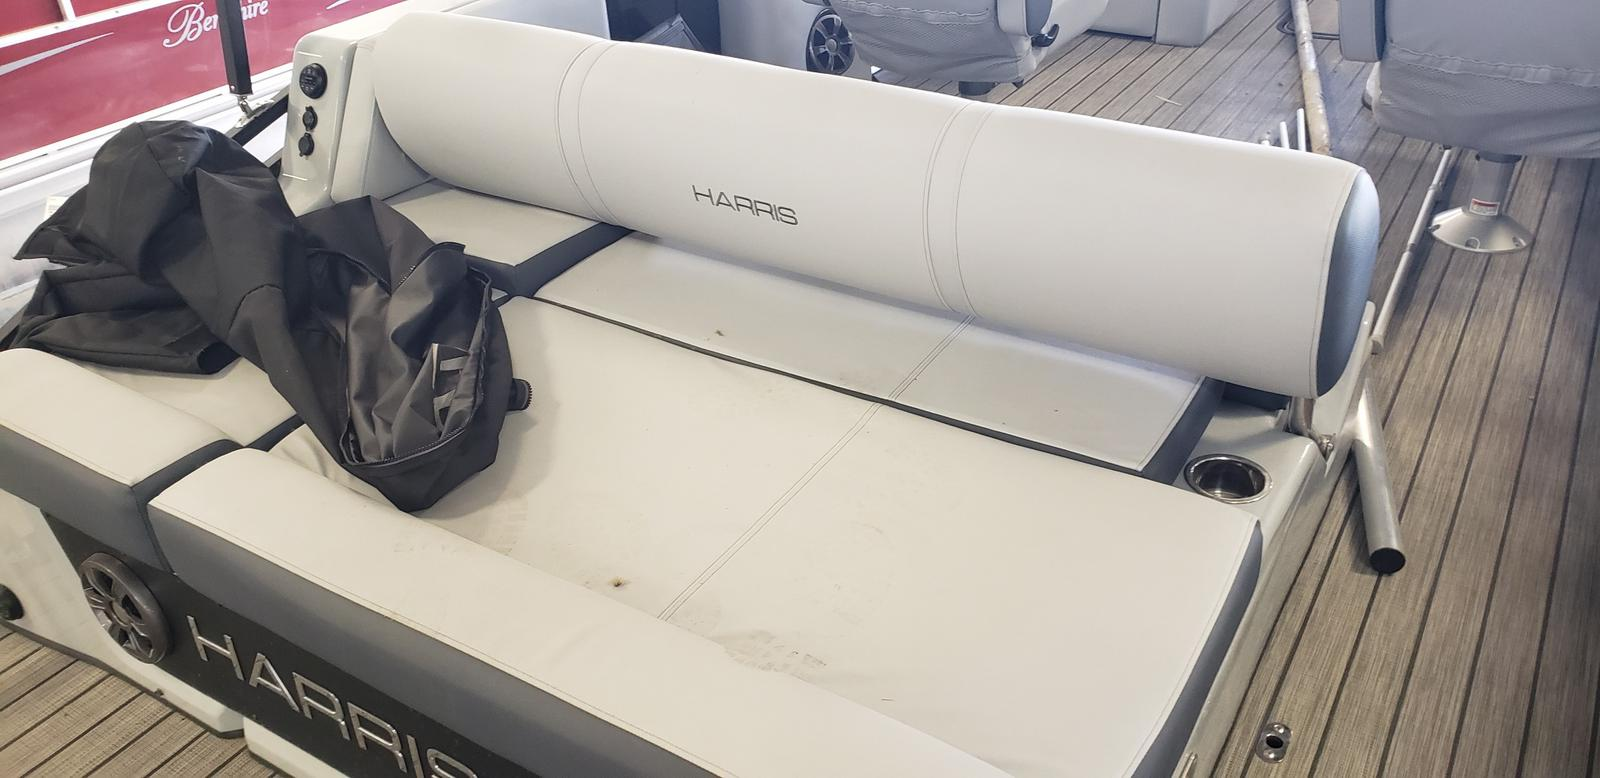 2020 Harris boat for sale, model of the boat is Solstice 250 & Image # 4 of 6